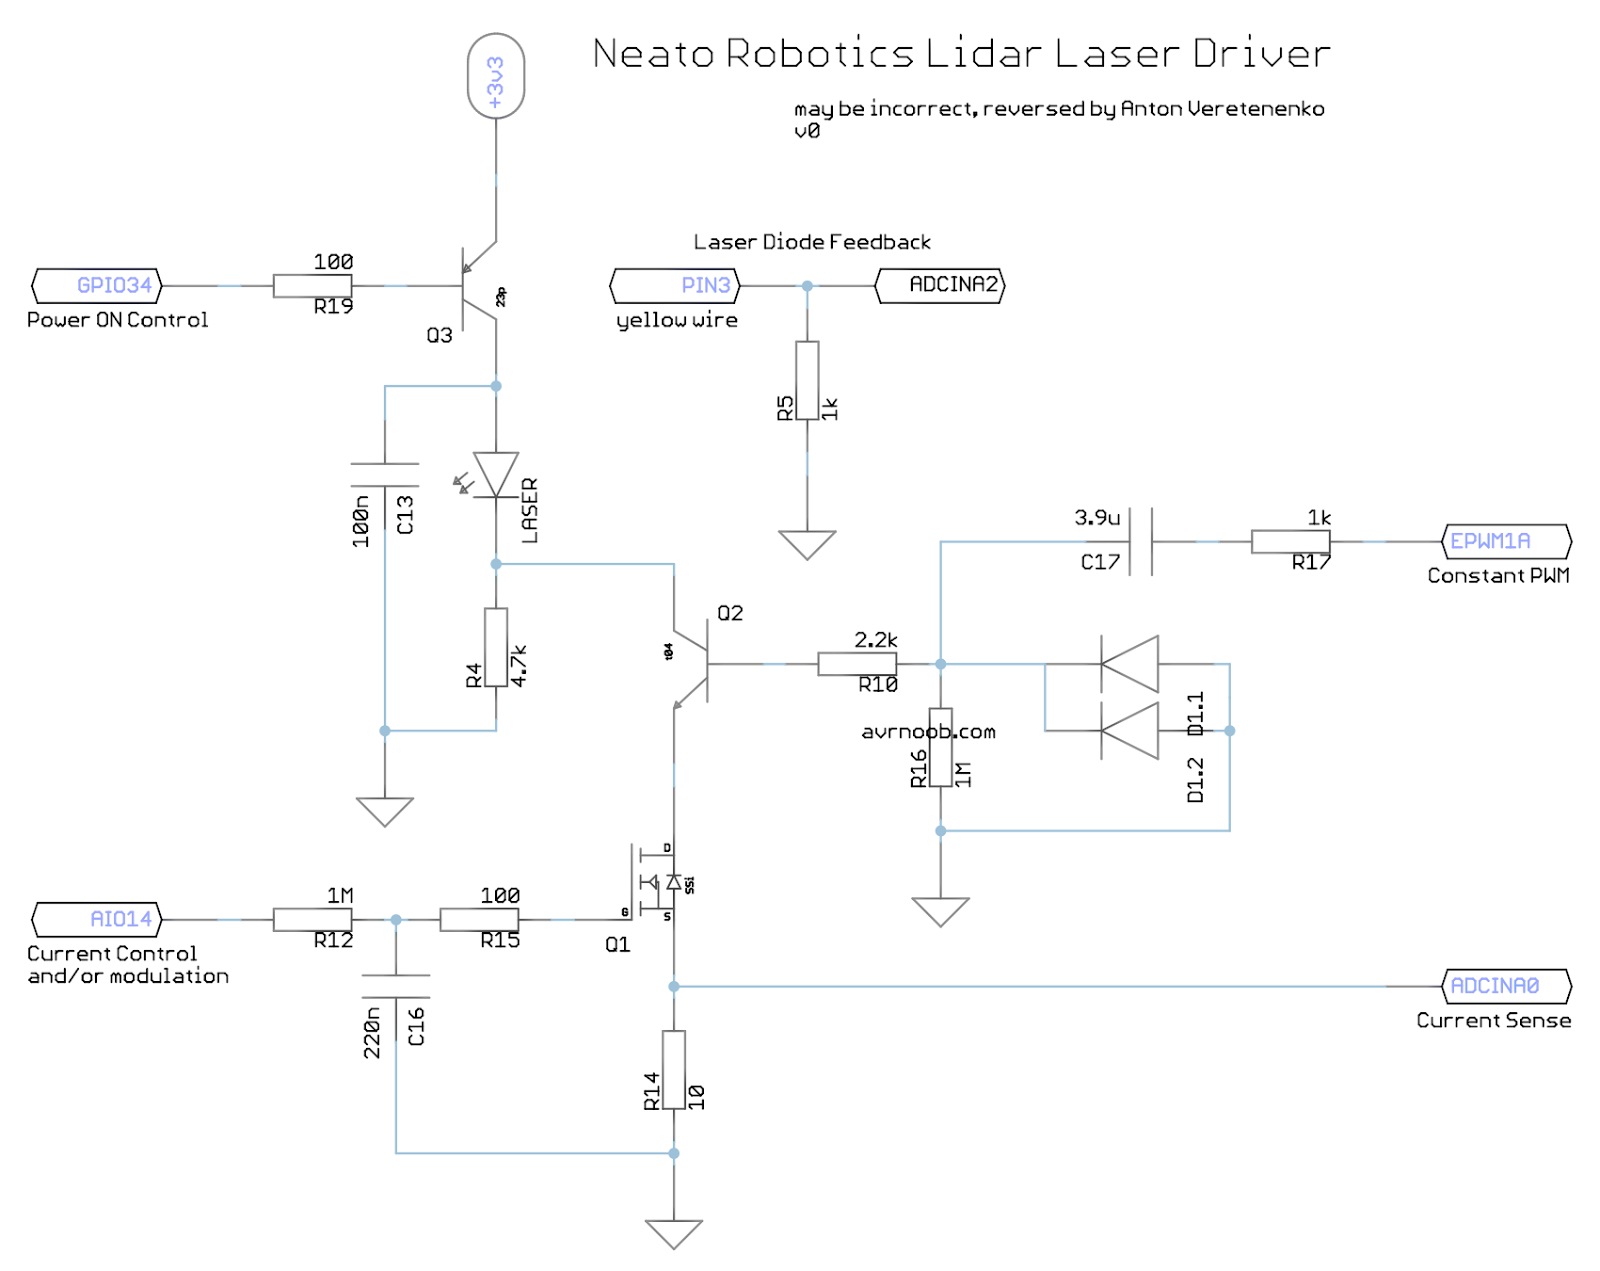 Making Electronics Neato Botvac Lidar Repair Part 1 Ir Camera Laser Diode Diagram Pulse Circuits For Infrared Leds And Visible Its A Bit Hard To Identify Sot 23 Transistors Mosfets So The Driver Has 3 Controls 2 Feedbacks There Is Power On Signal Turn